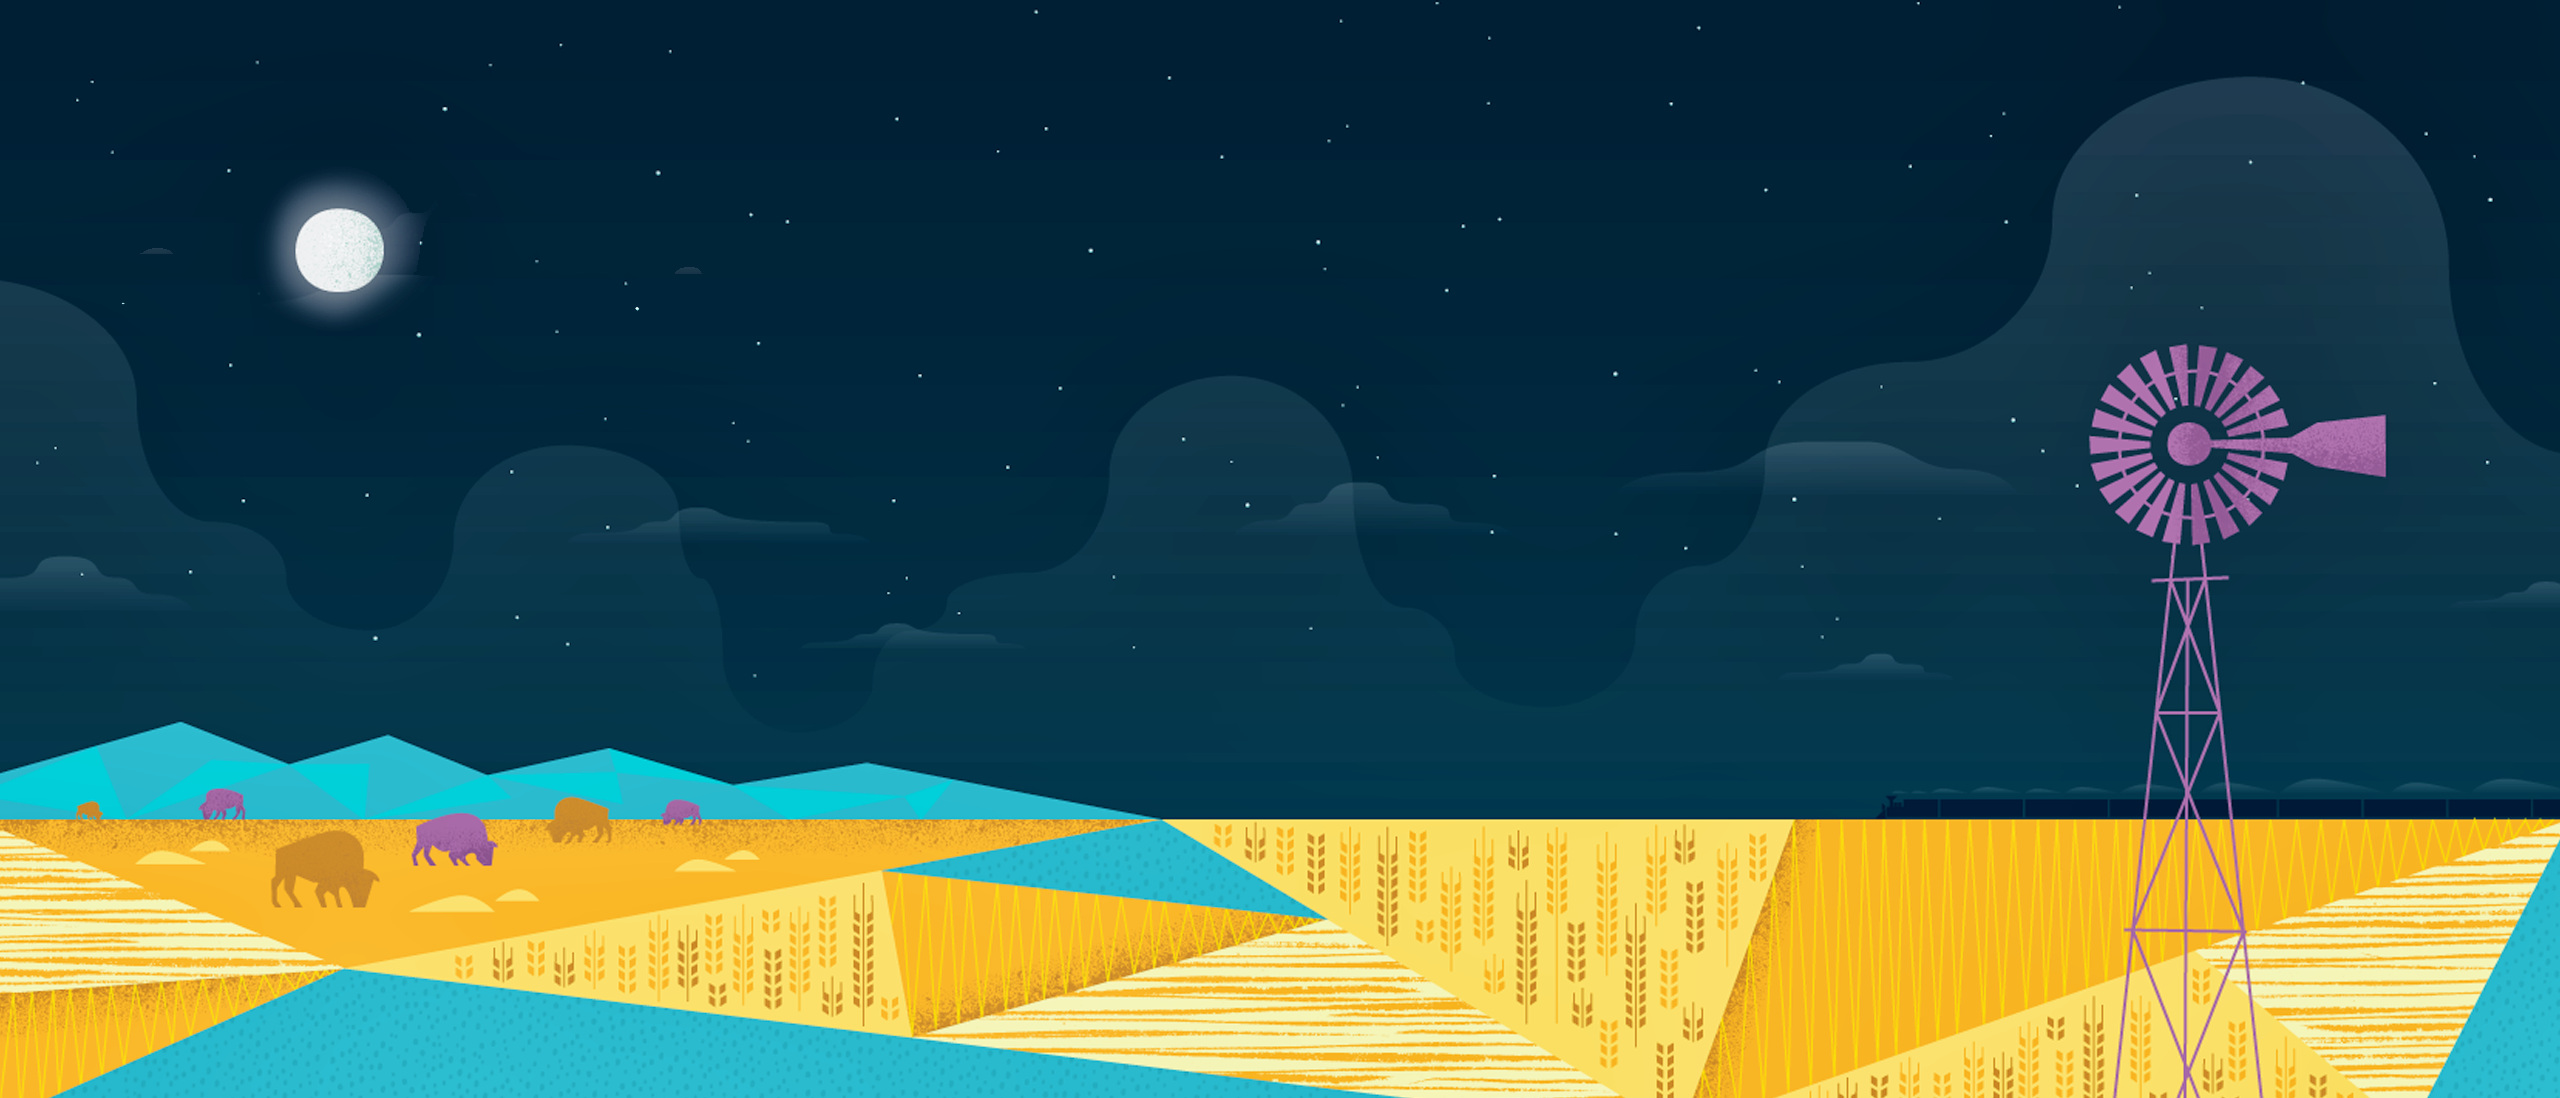 44 google now backgrounds